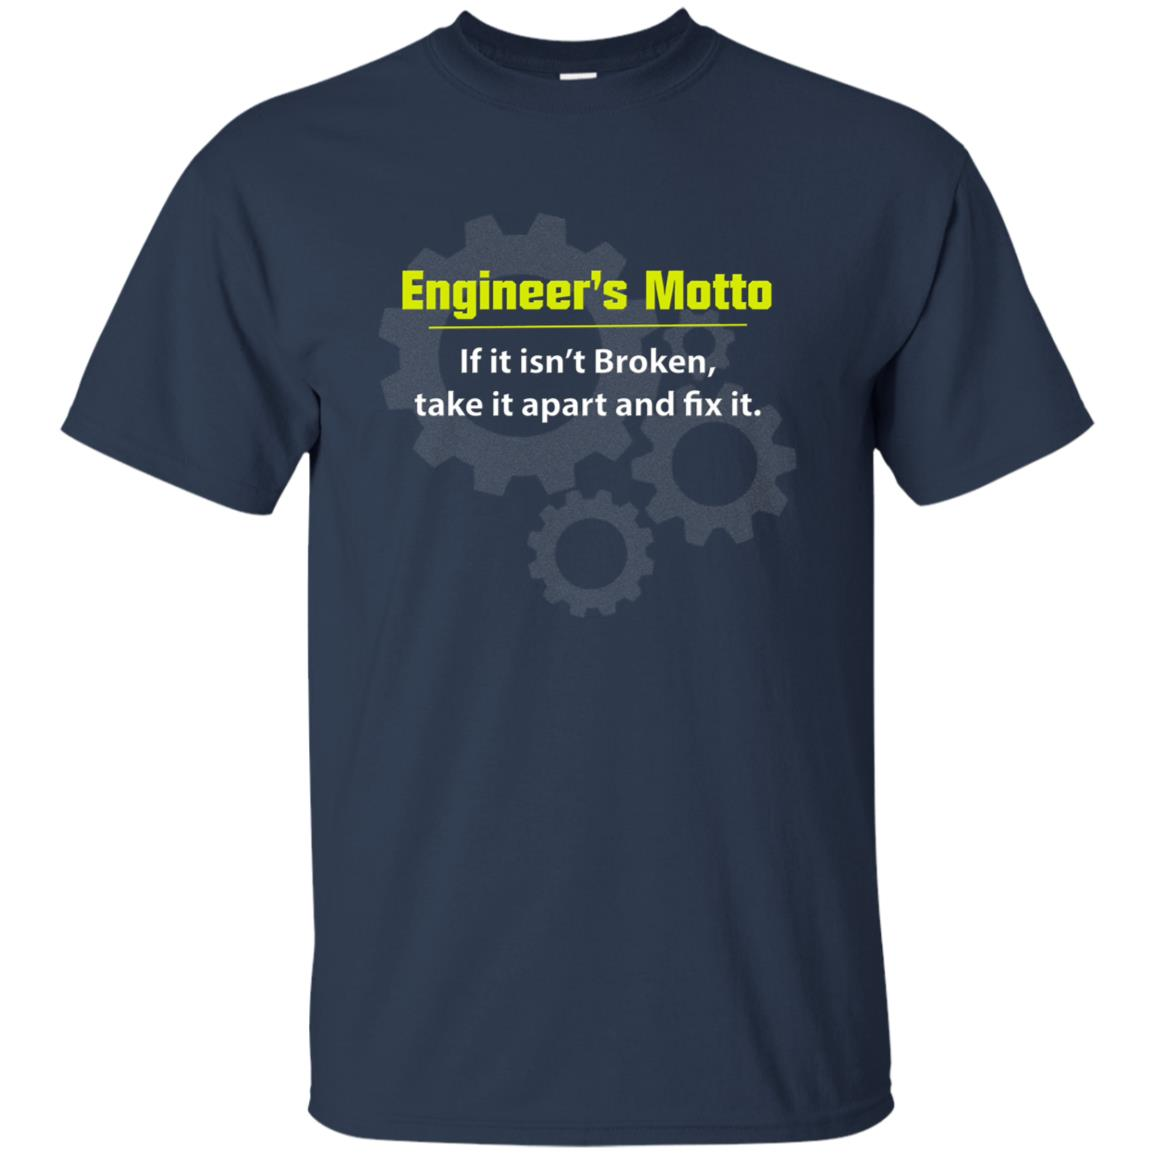 Engineer's Motto Funny Engineering Gift for Nerds Unisex Short Sleeve